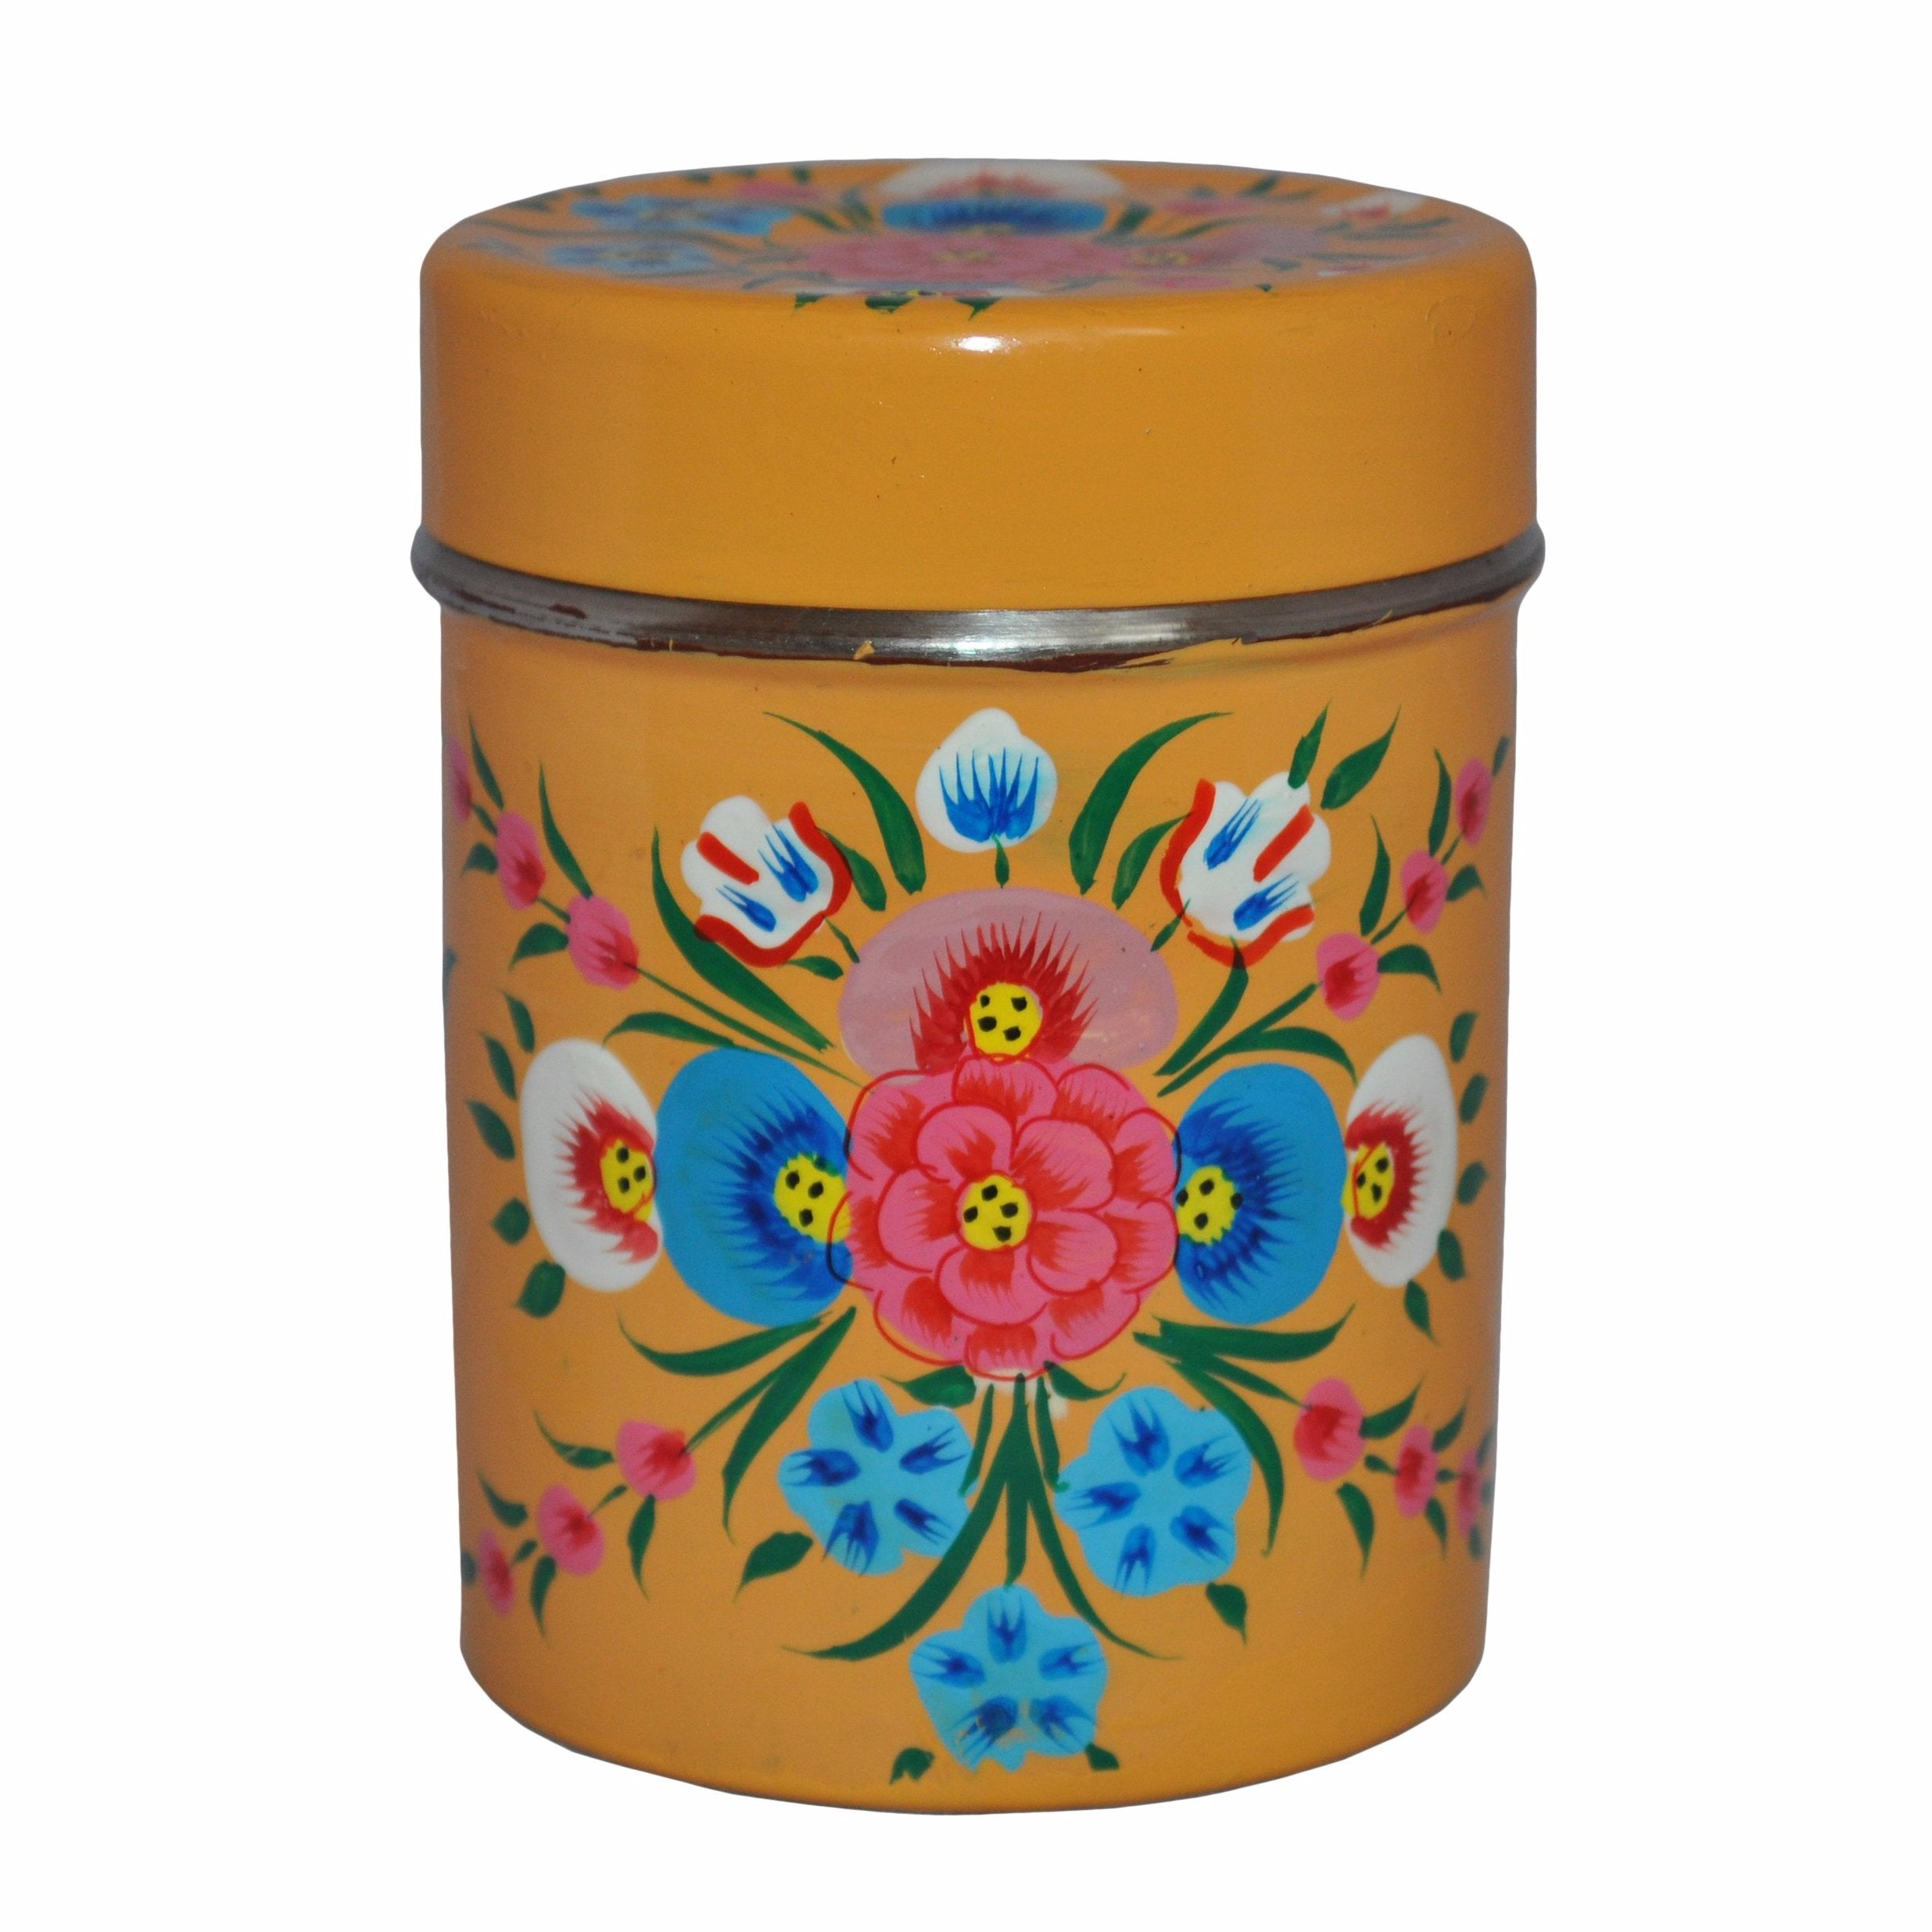 Mustard Yellow Tea Caddy by Jasmine White on OOSTOR.com